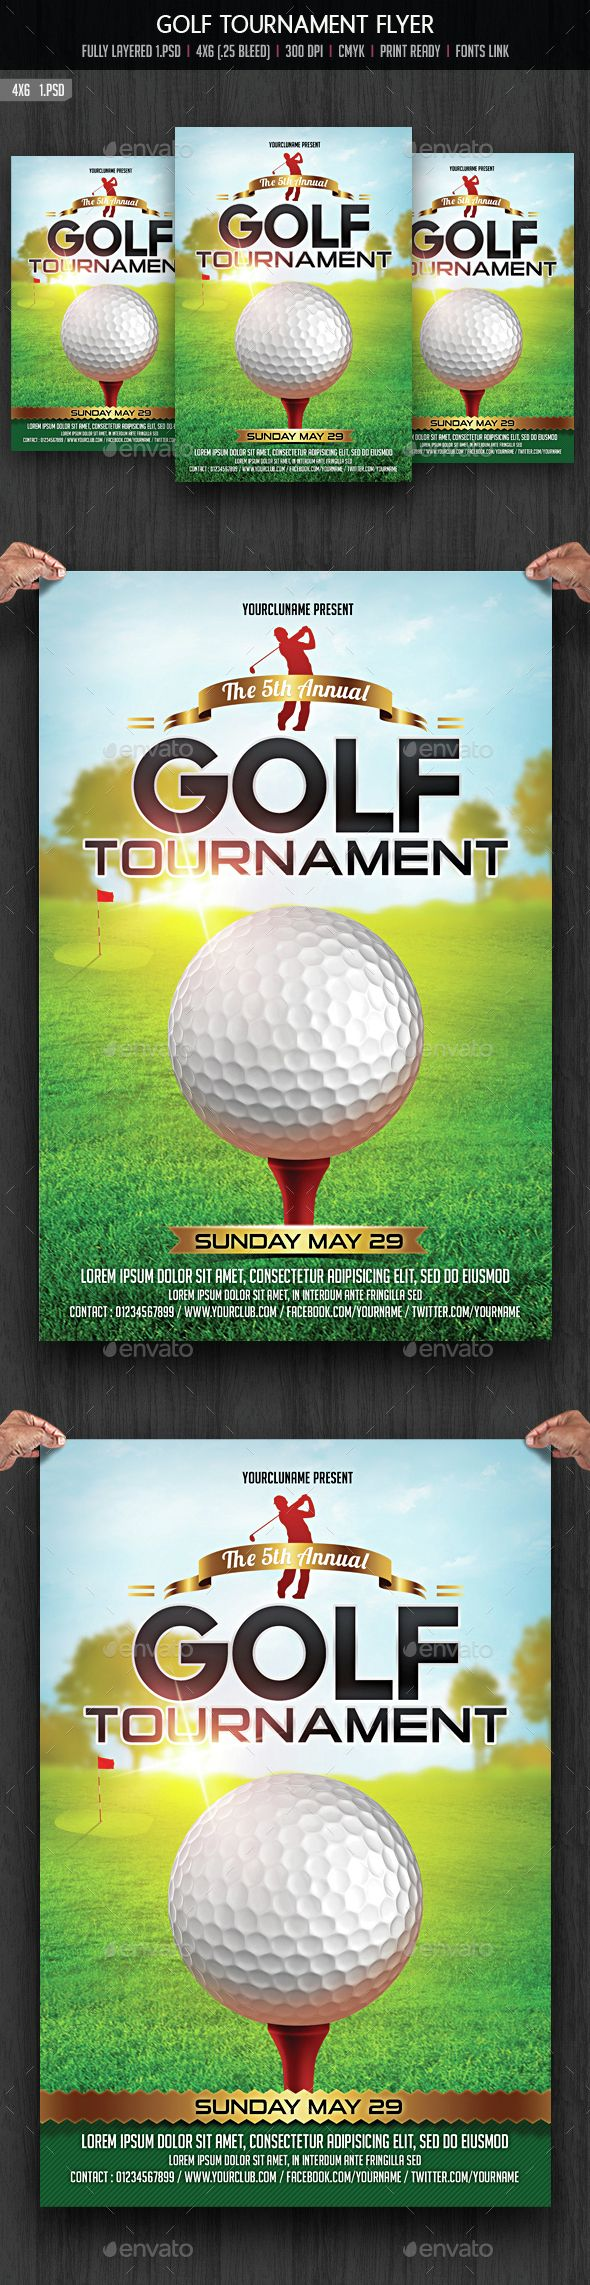 Golf Tournament Flyer By Creativeartx Golf Tournament Flyer Template